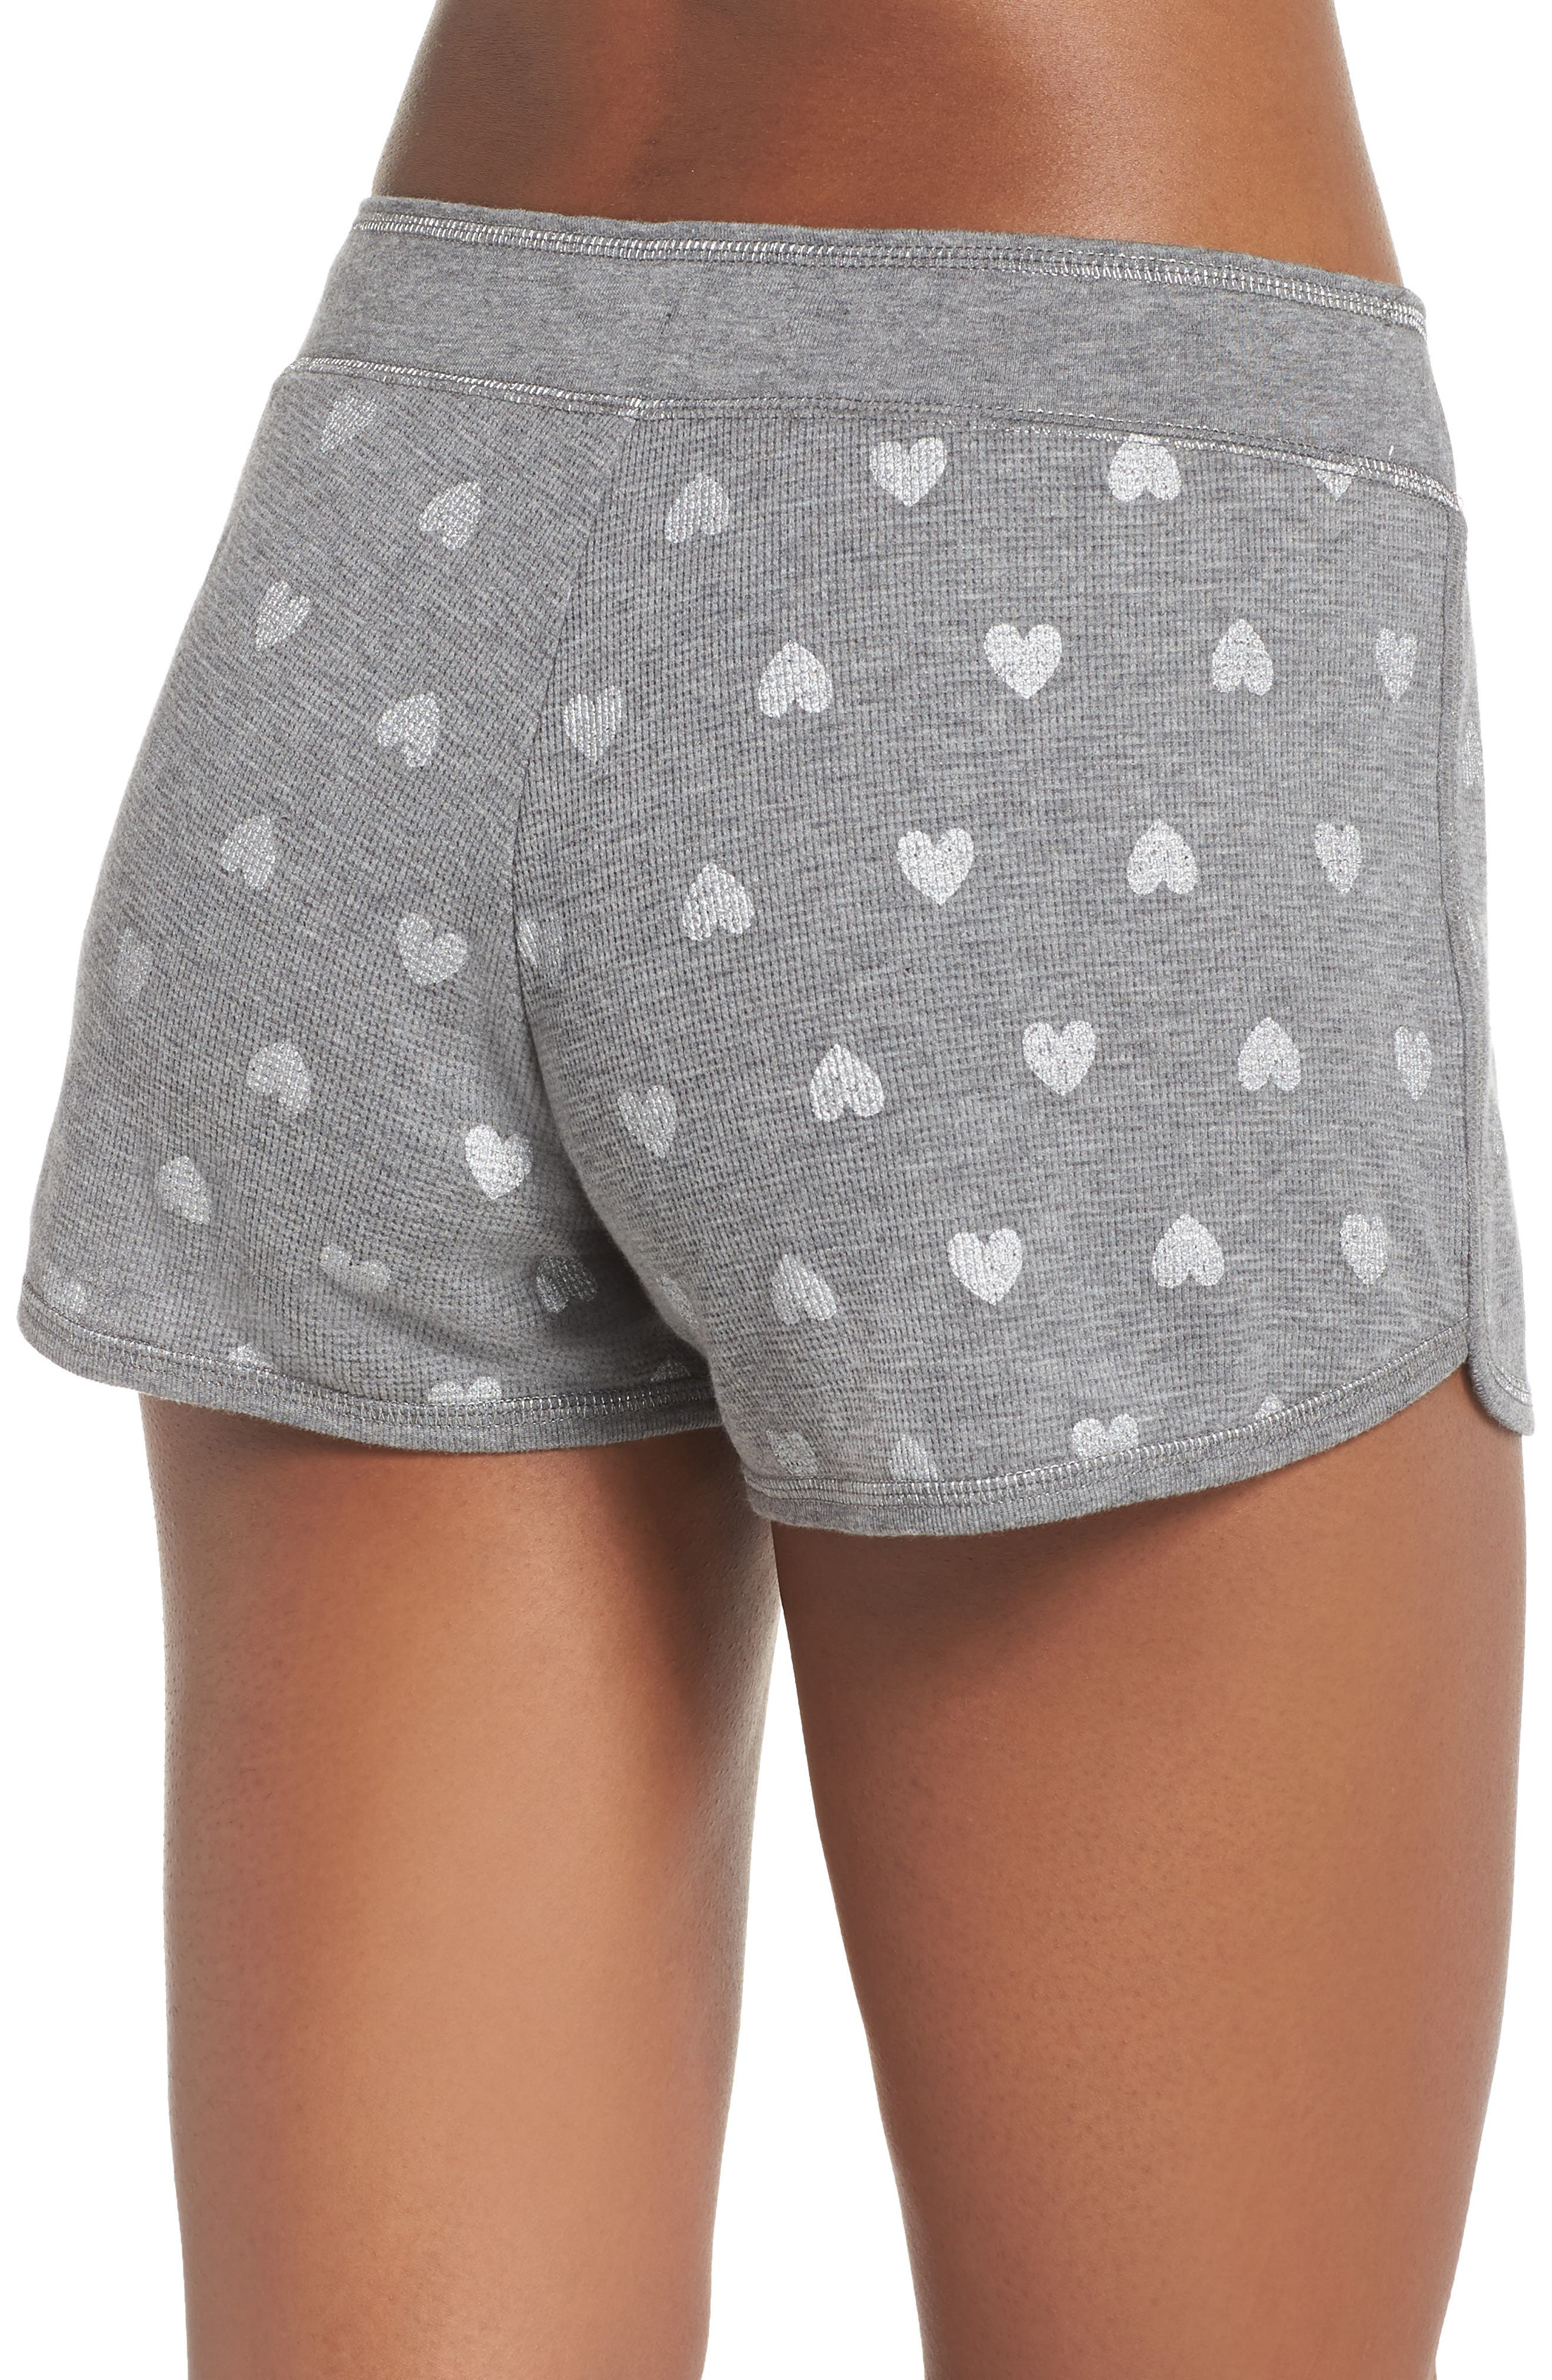 Wild Heart Thermal Shorts,                             Alternate thumbnail 2, color,                             020